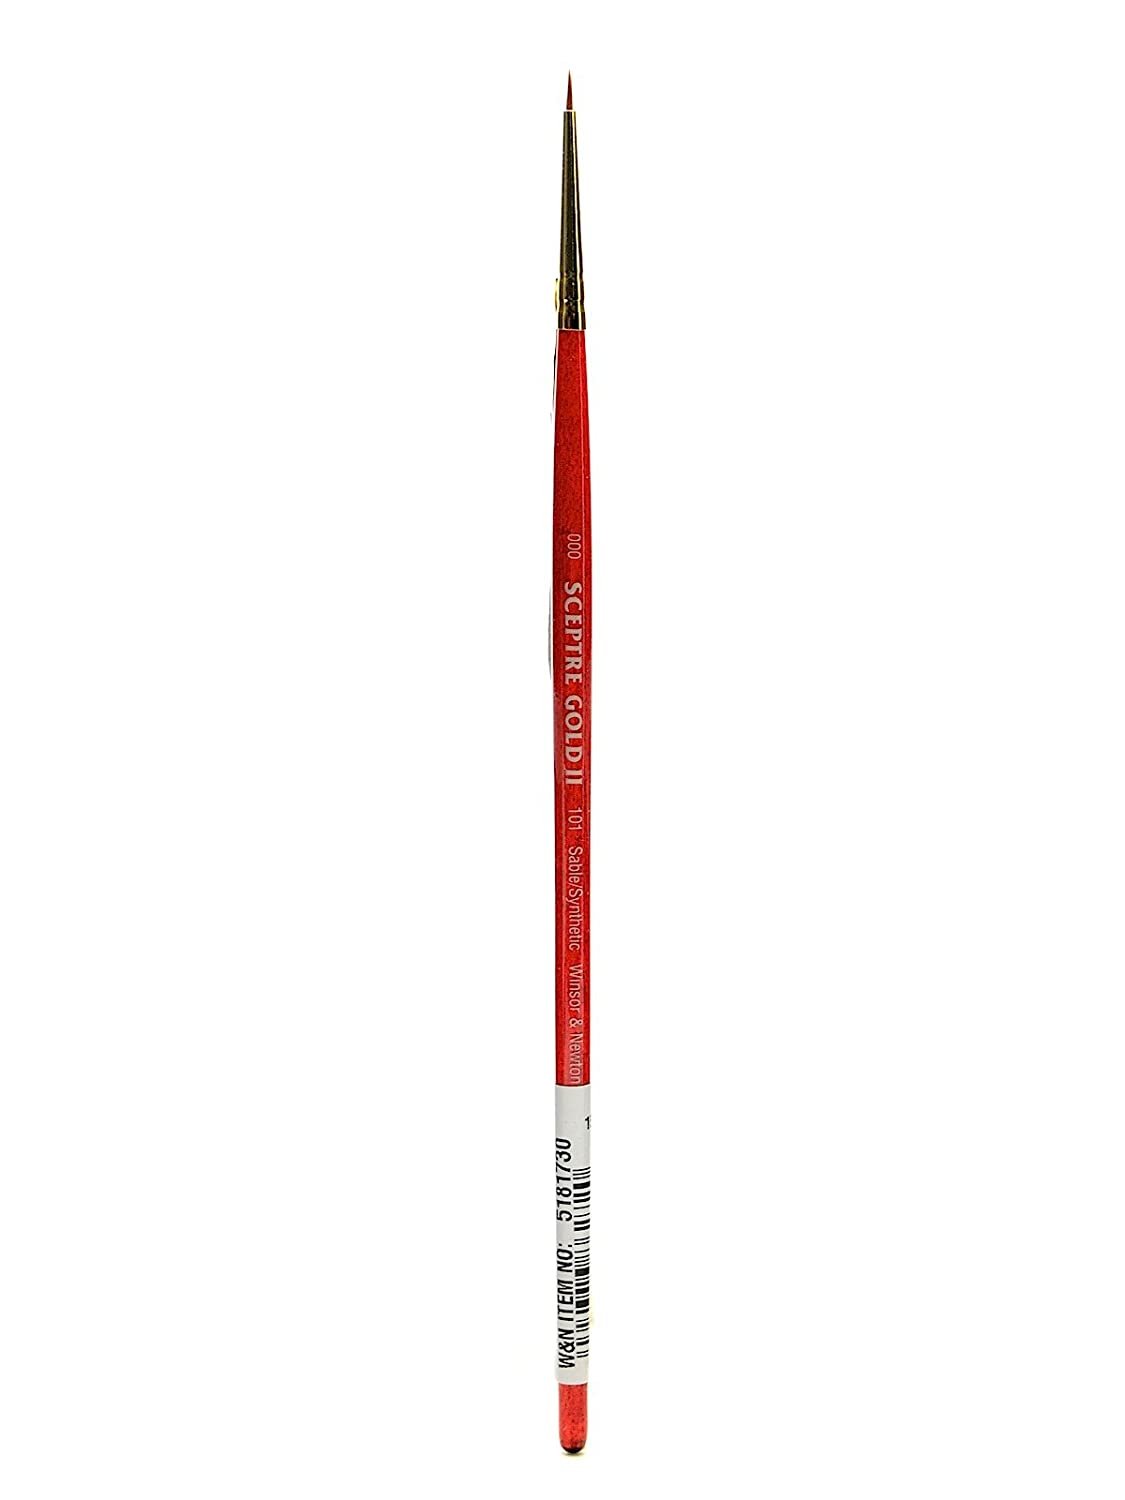 Winsor and Newton Sceptre Gold II Brush Designers Round-Short Handle 4